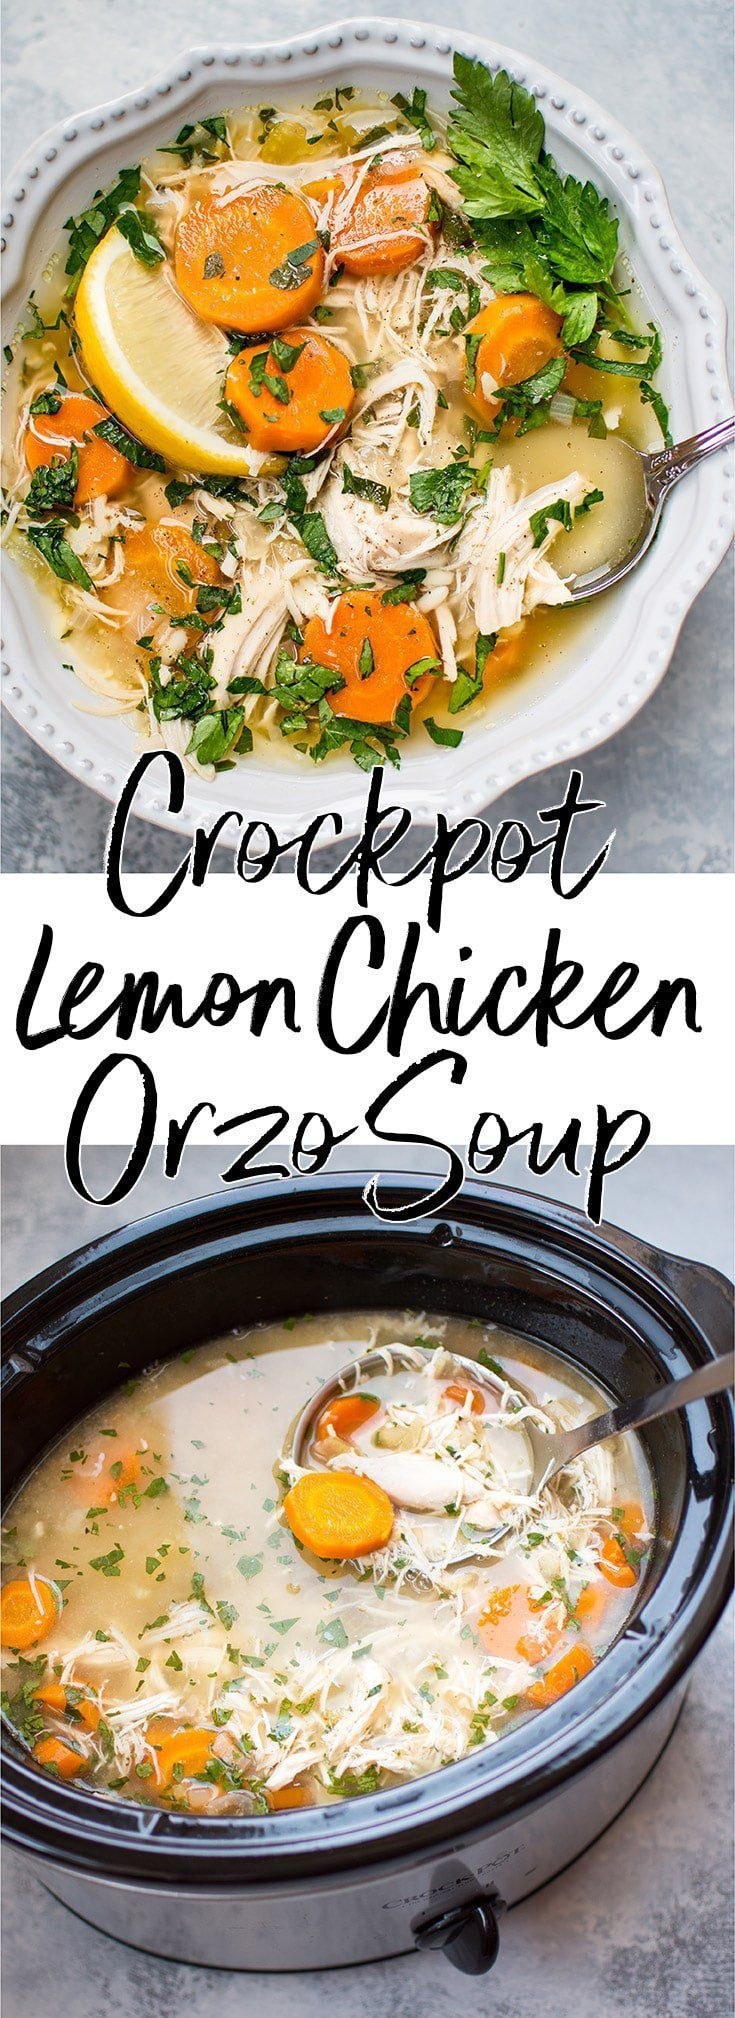 This Crockpot lemon chicken orzo soup recipe is healthy, super easy, and family-friendly. Come home to a steaming bowl of deliciousness! #chickensoup